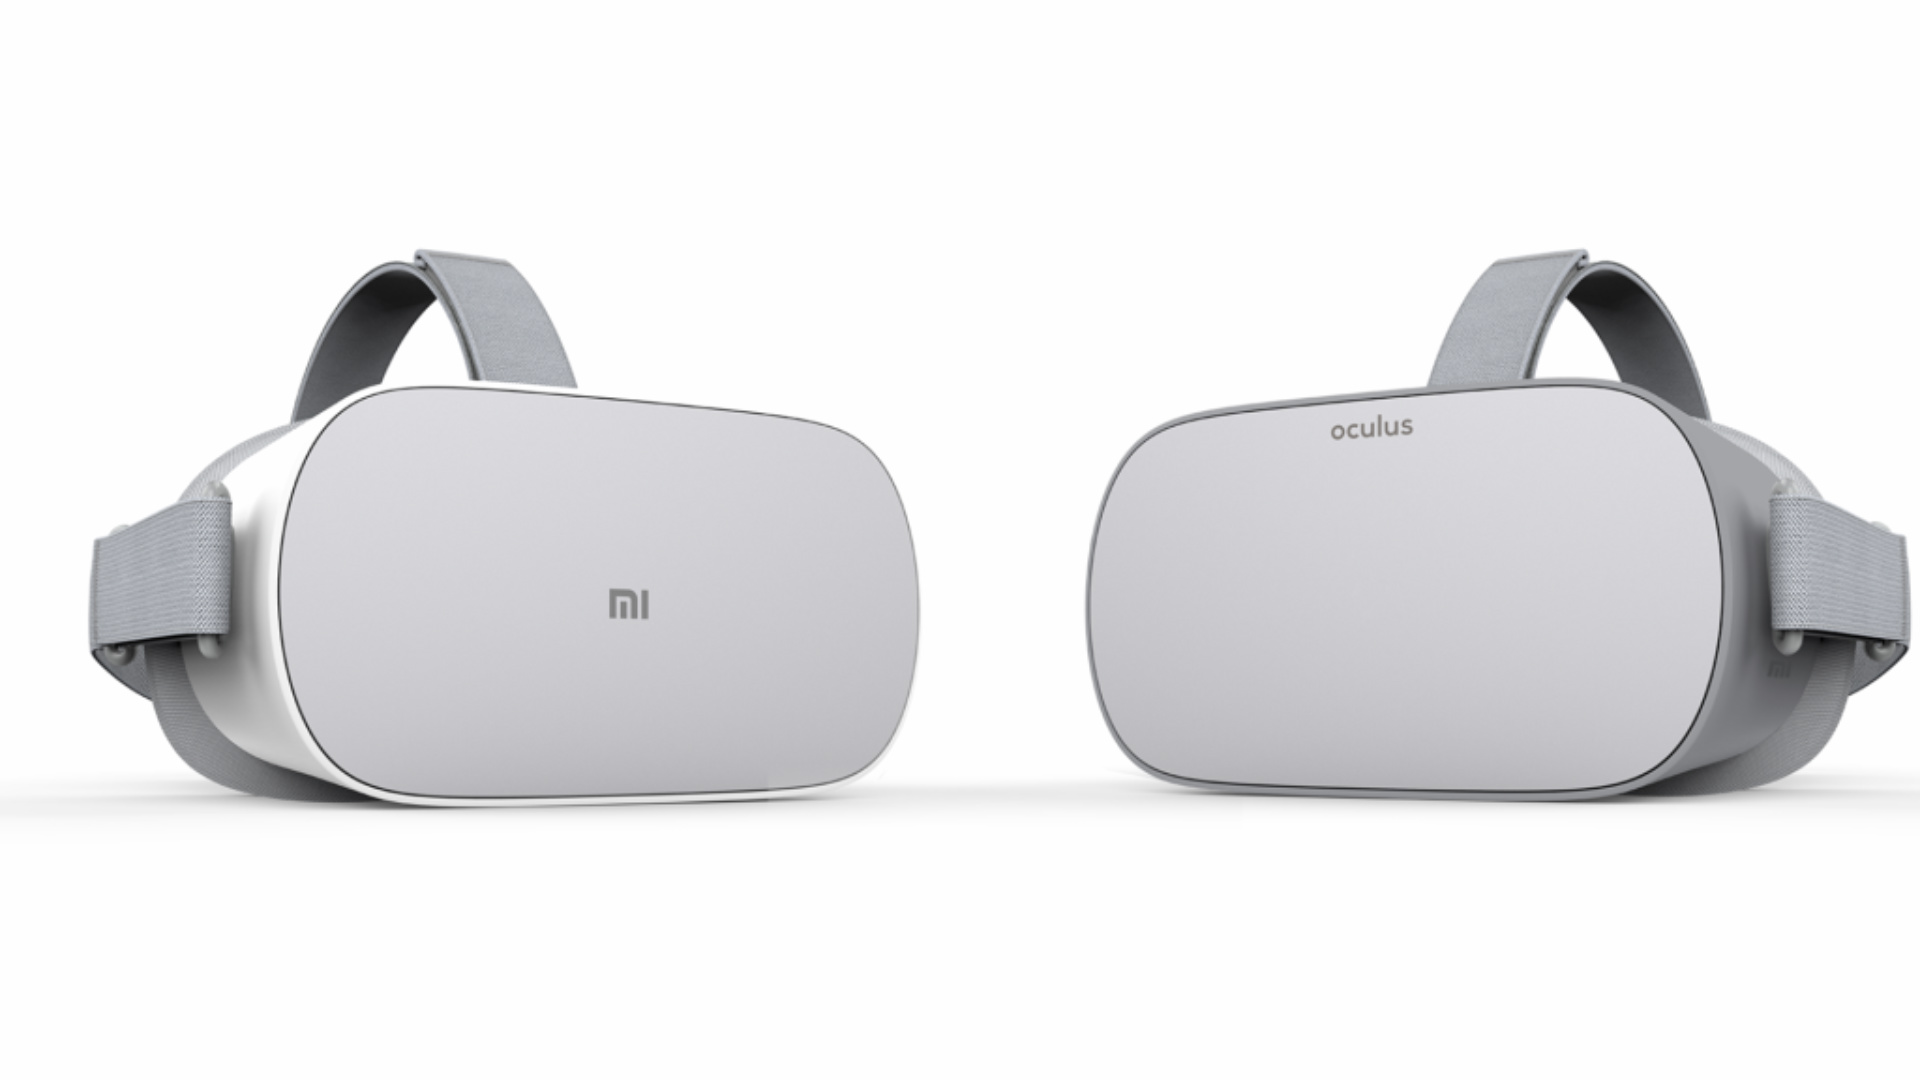 CES 2018: Xiaomi to Bring Oculus Go to China Under Its Own Brand